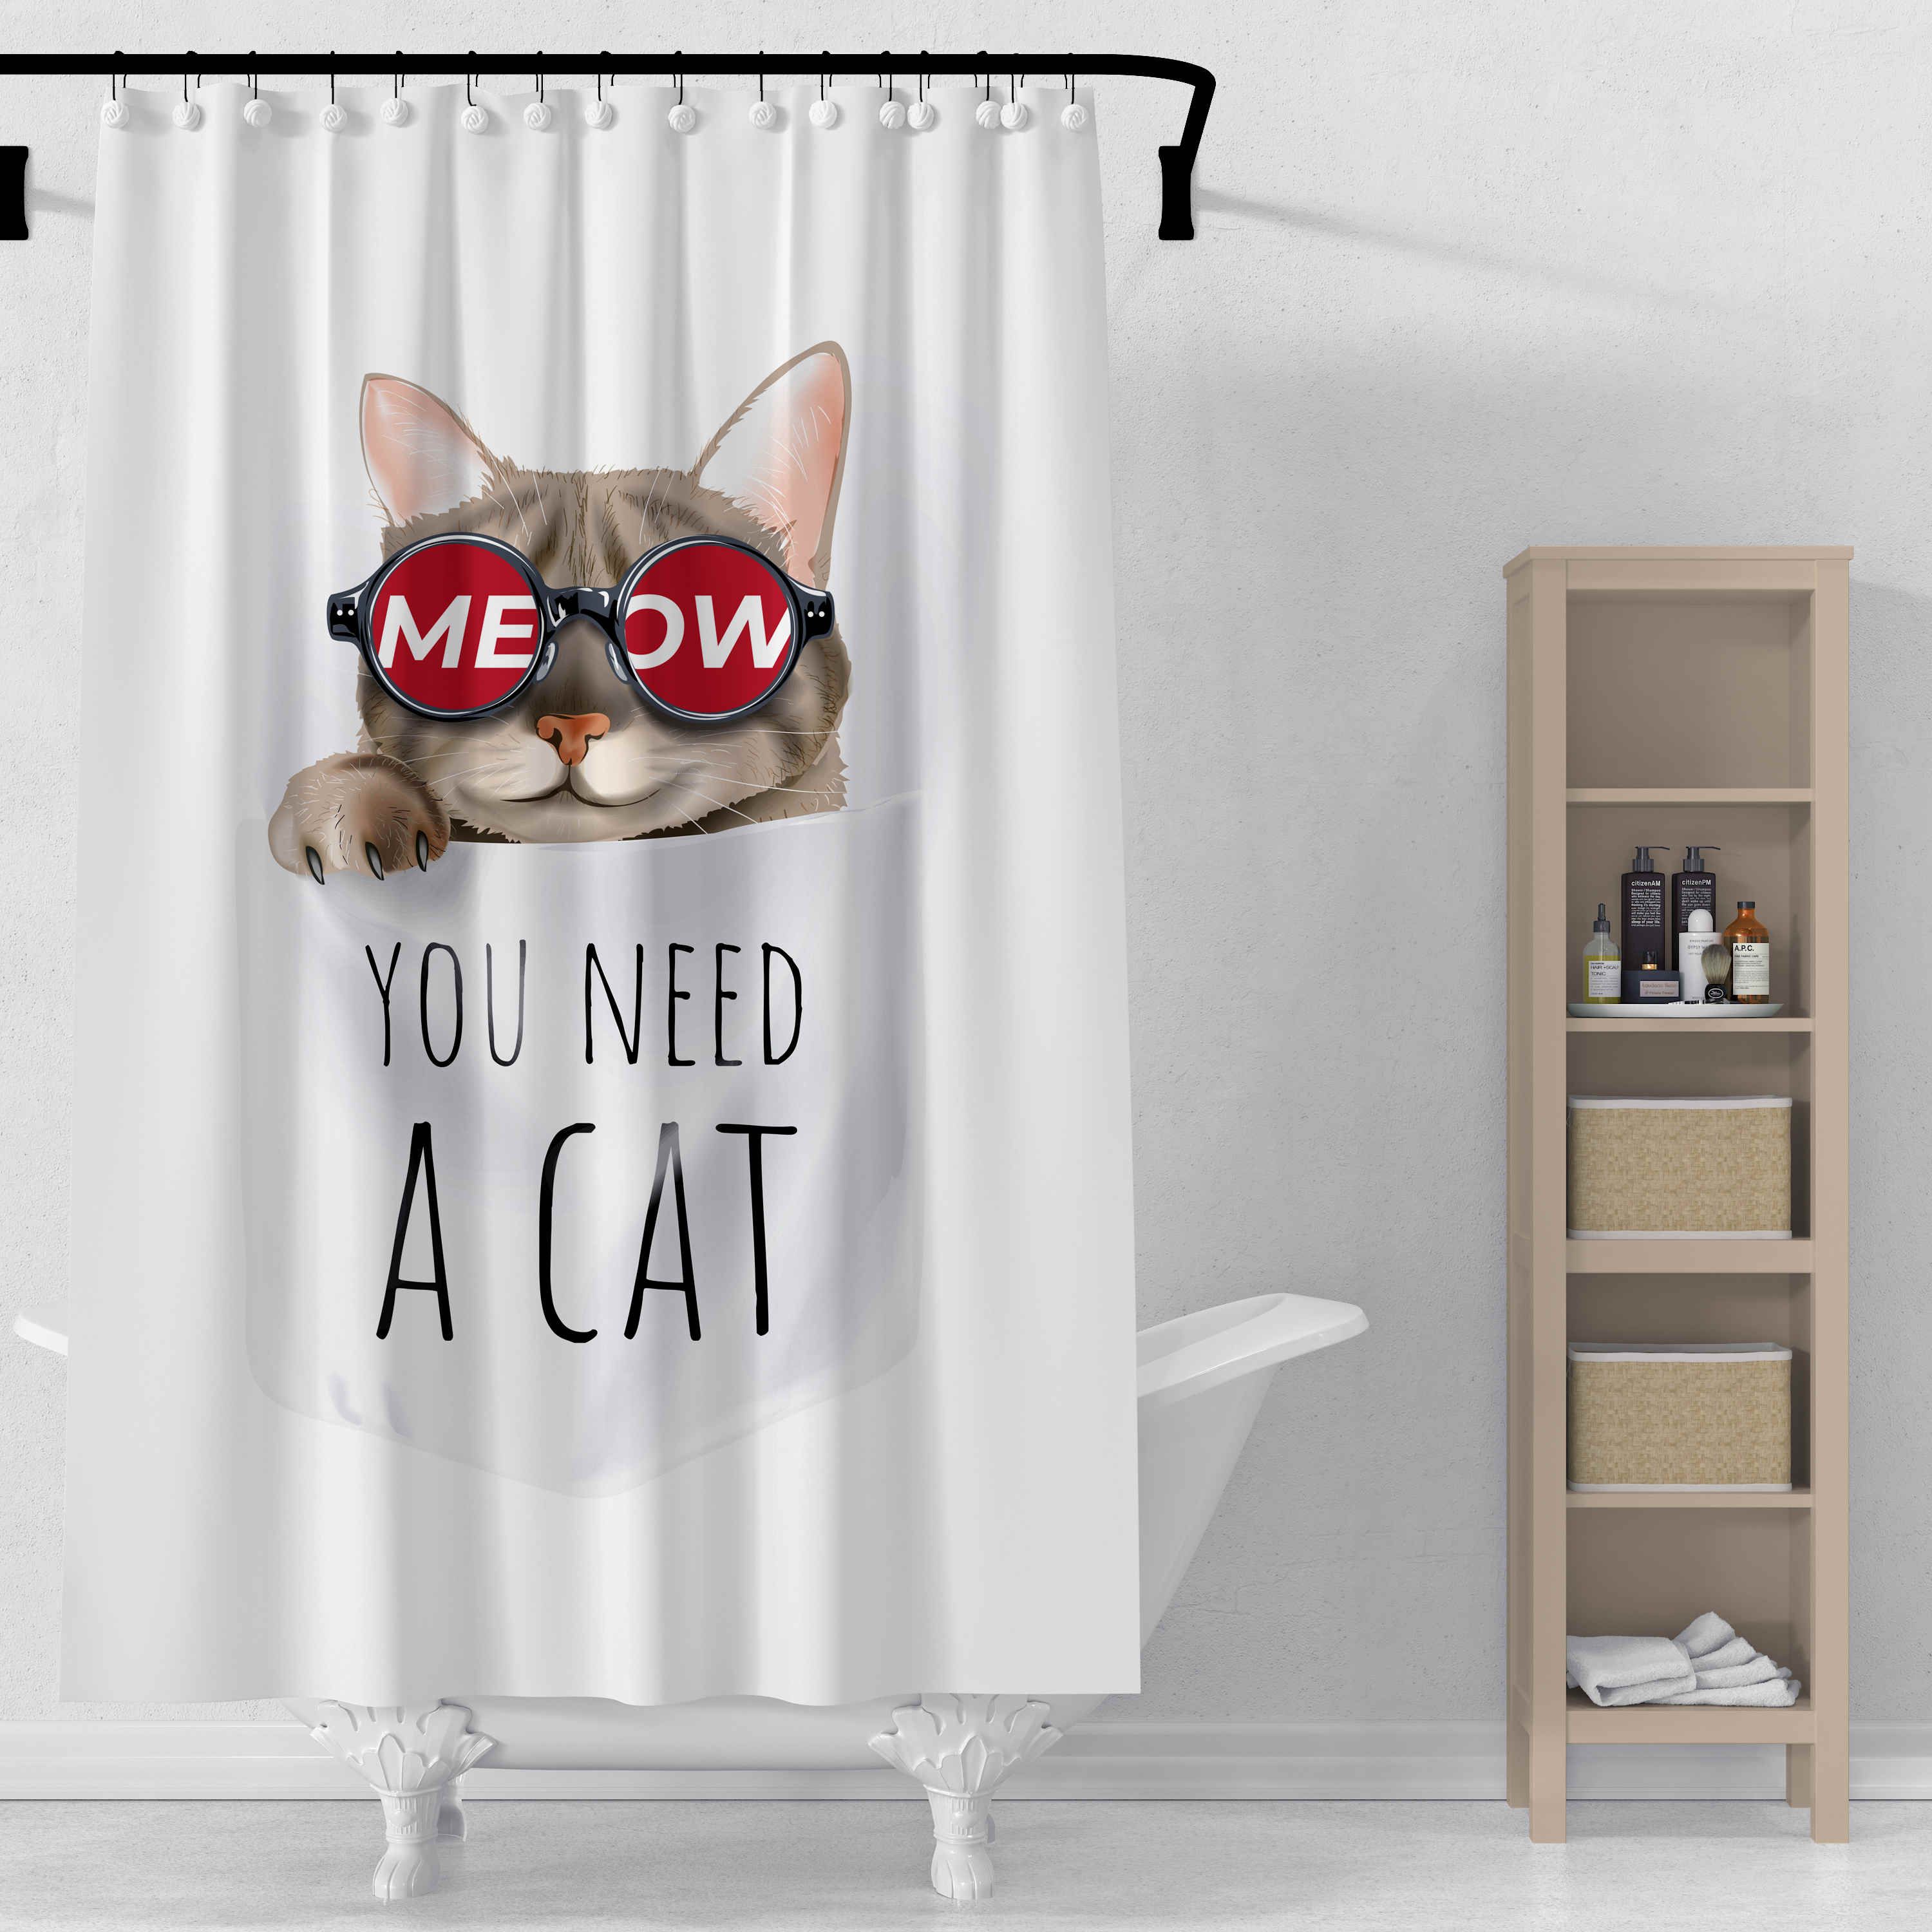 Cat Printing Shower Curtain 3d Print Bathroom Waterproof Polyester Curtain Octopus Washable Bath Decor Curtains With 12 Hook Shower Curtains Aliexpress